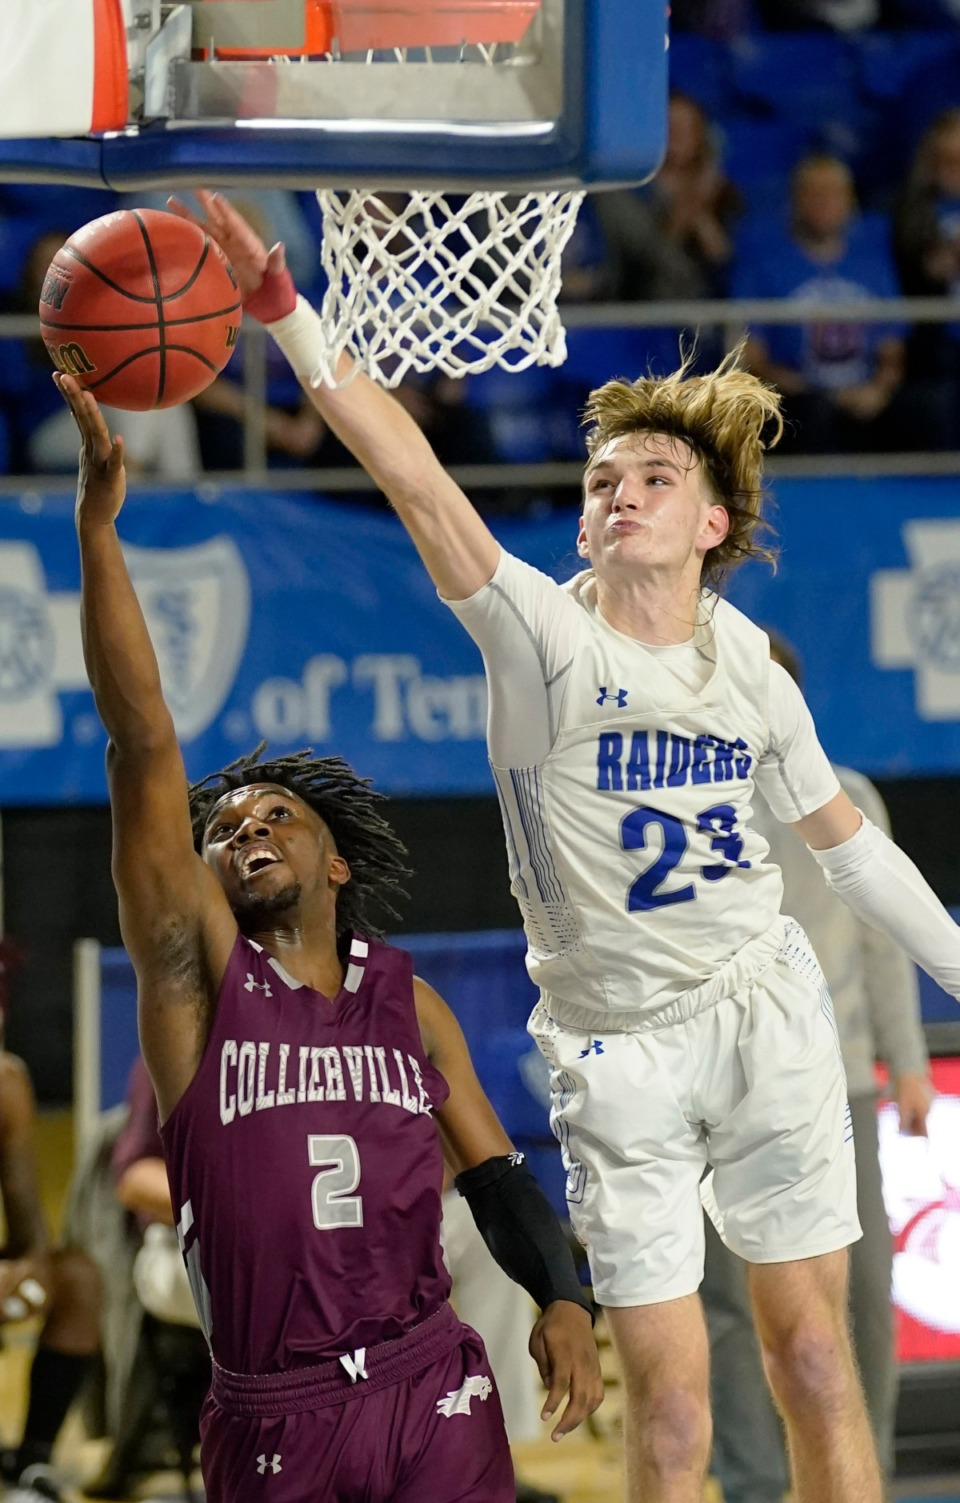 <strong>Cleveland's Kley McGowan (23) blocks Collierville's Jordan Coleman (2) as Cleveland plays Collierville at the Division I Class AAA quarterfinal game on March 18, 2021, in Murfreesboro, Tennessee.</strong> (Larry McCormack/Special to The Daily Memphian)